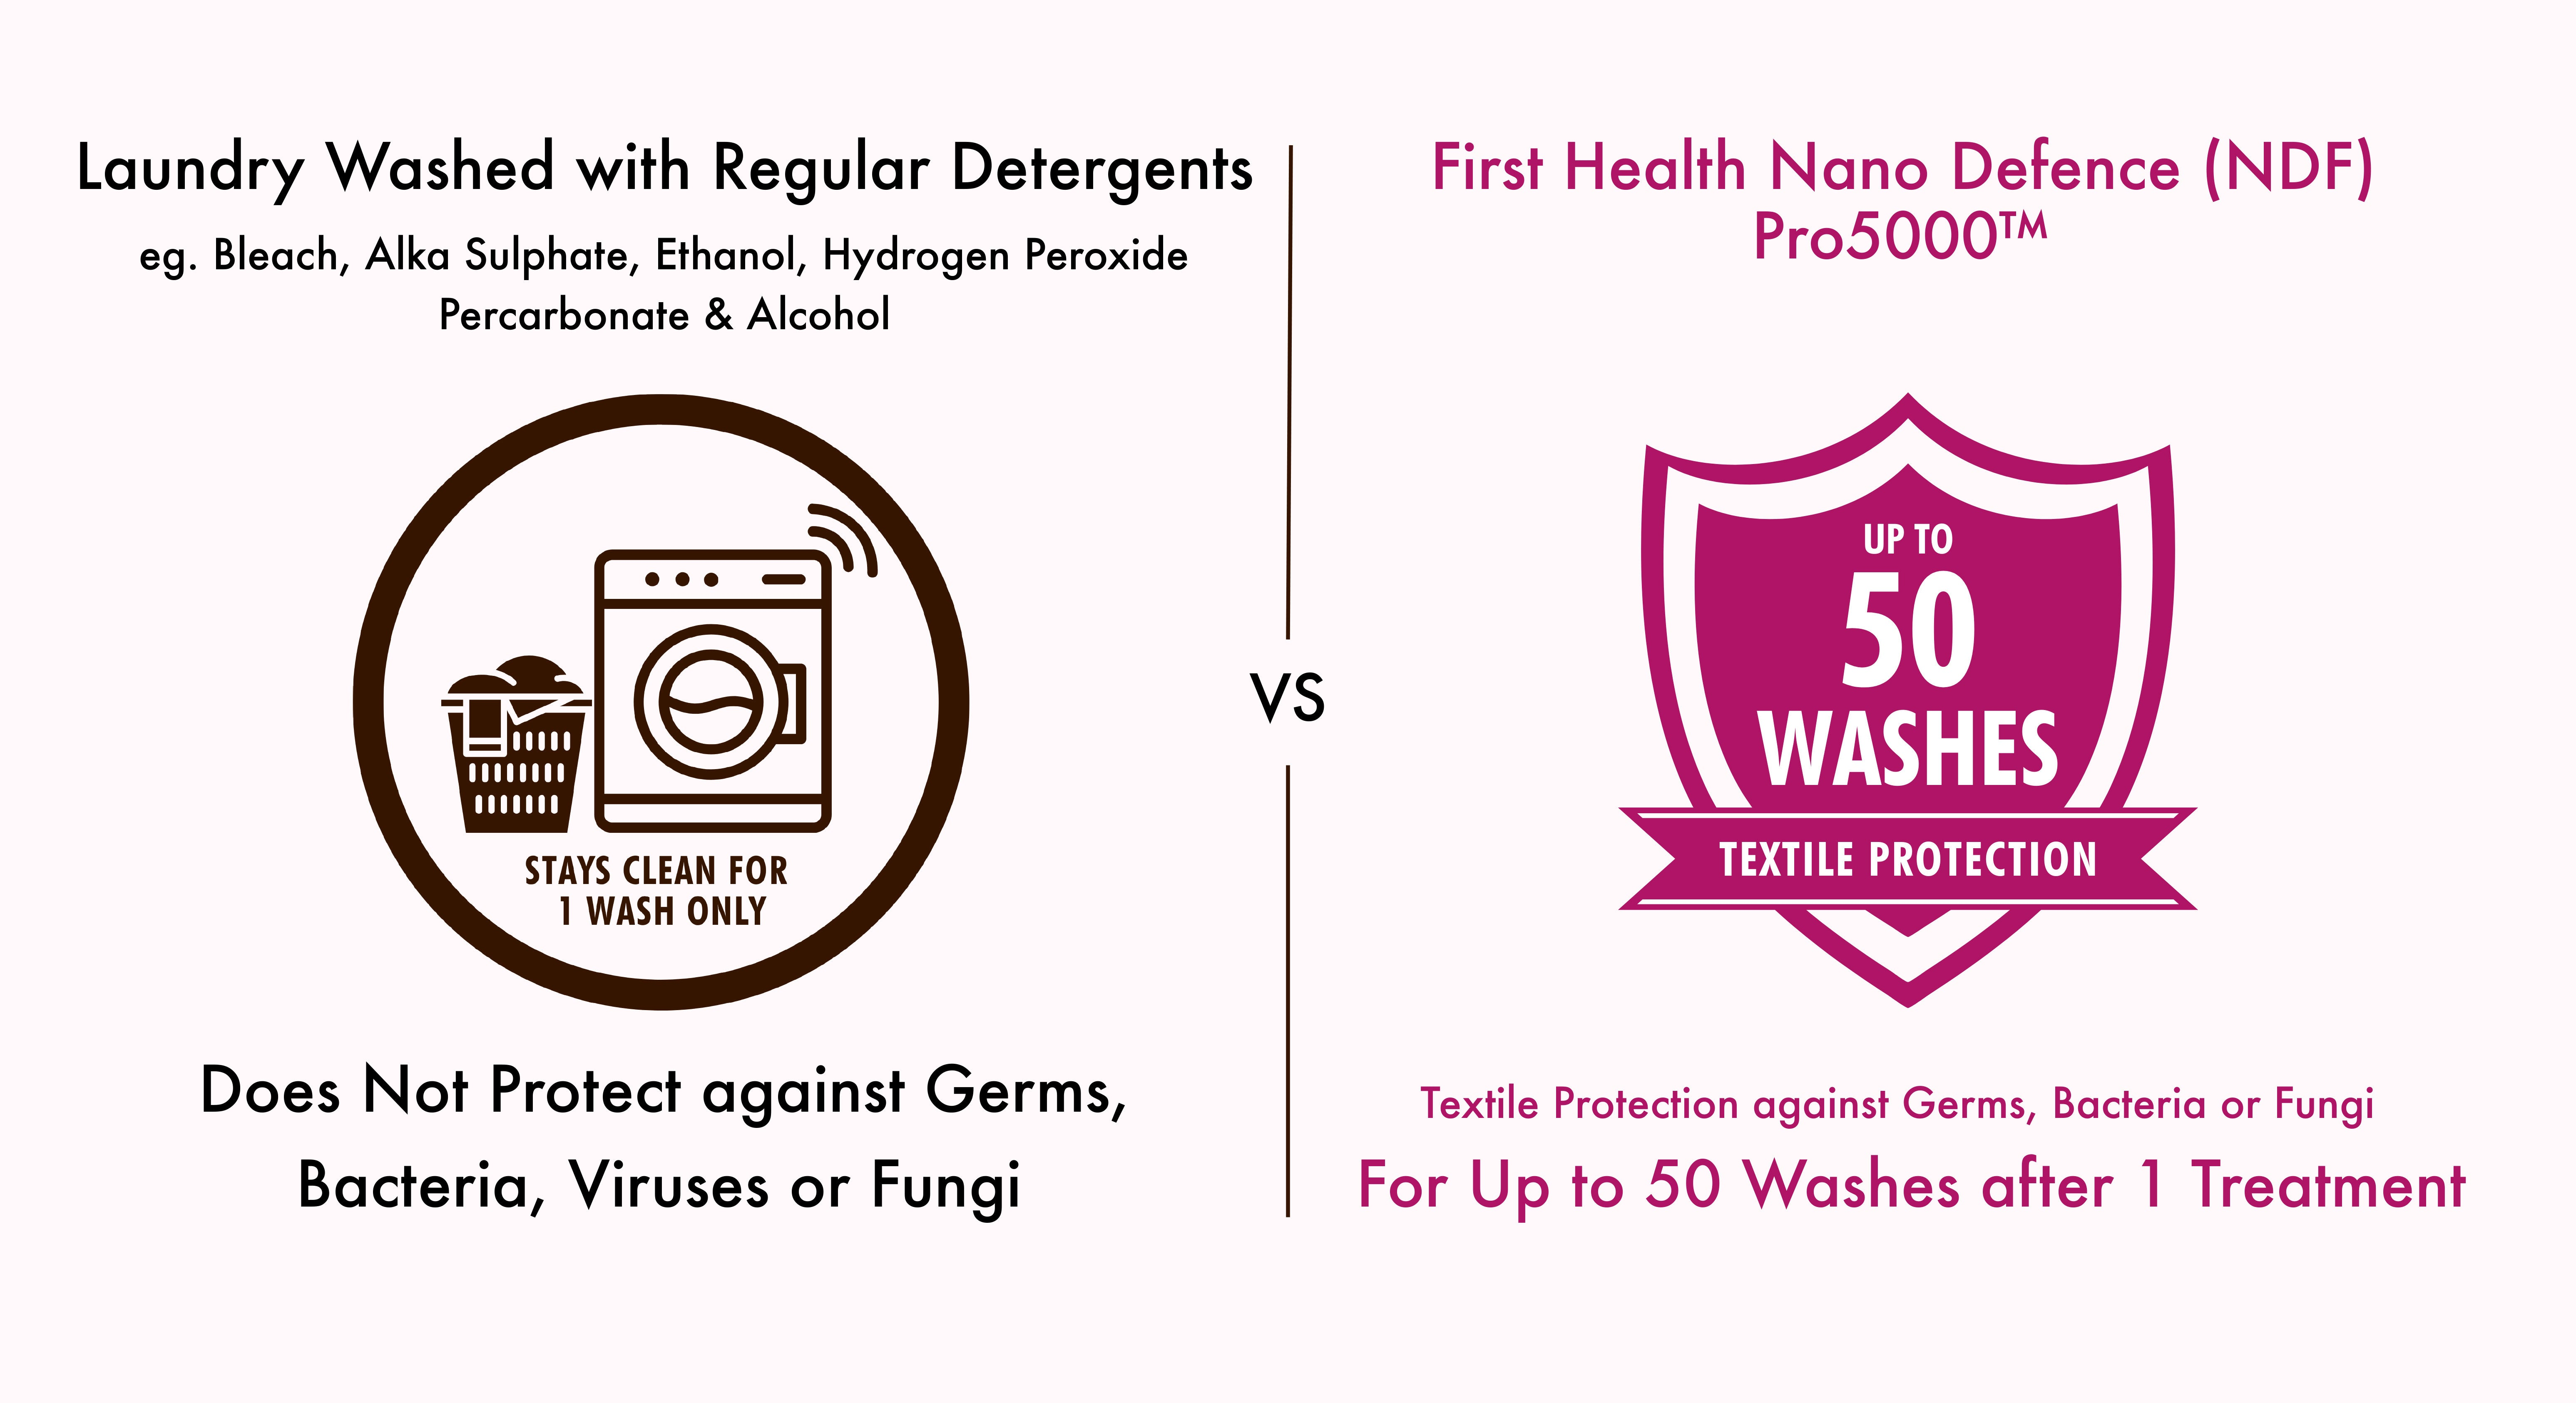 Normal Laundry against Using NDF Pro5000™